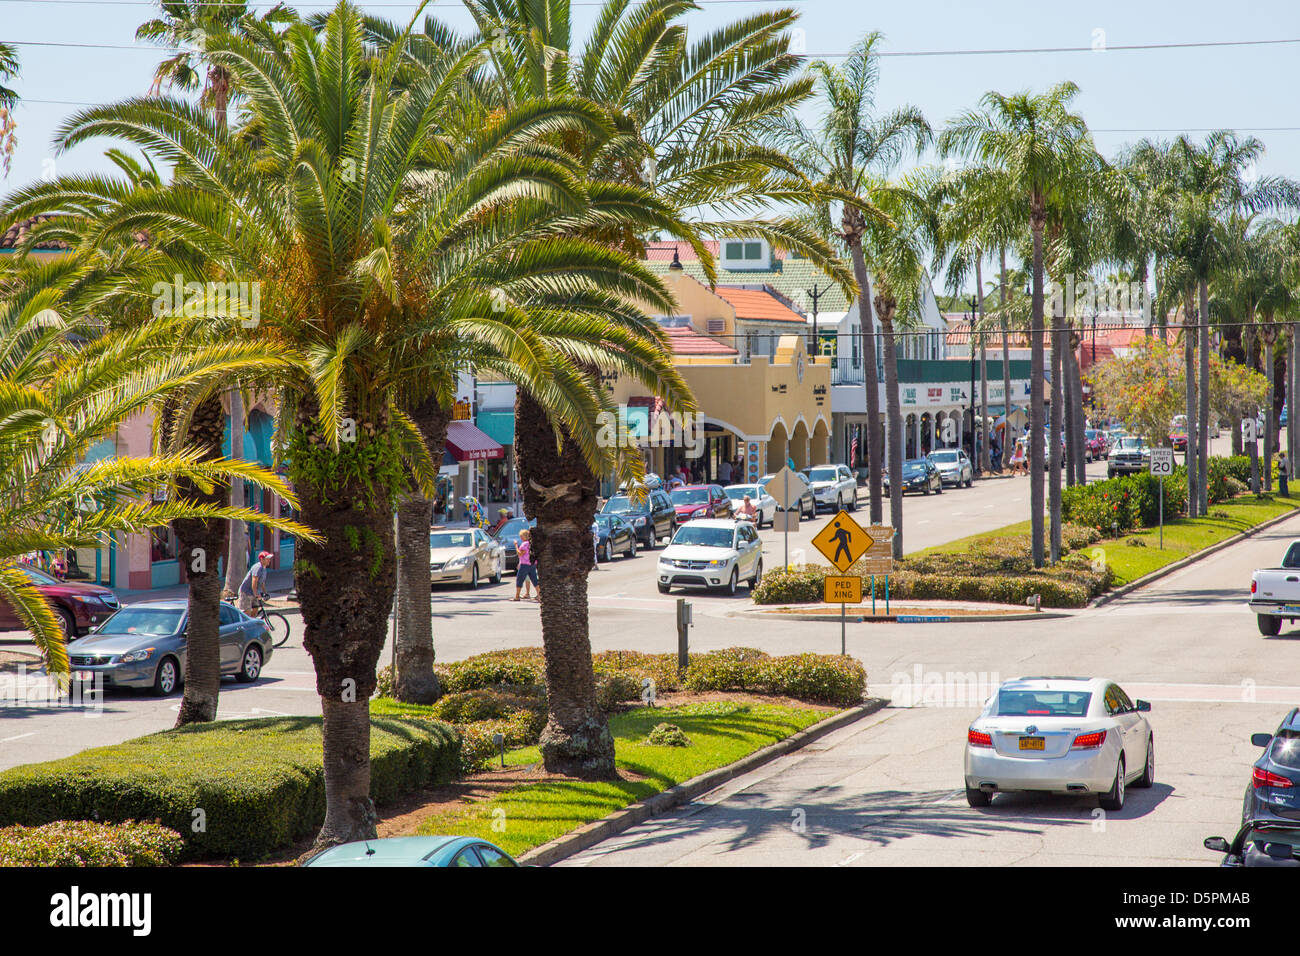 Shopping venice florida / City state diner portland or